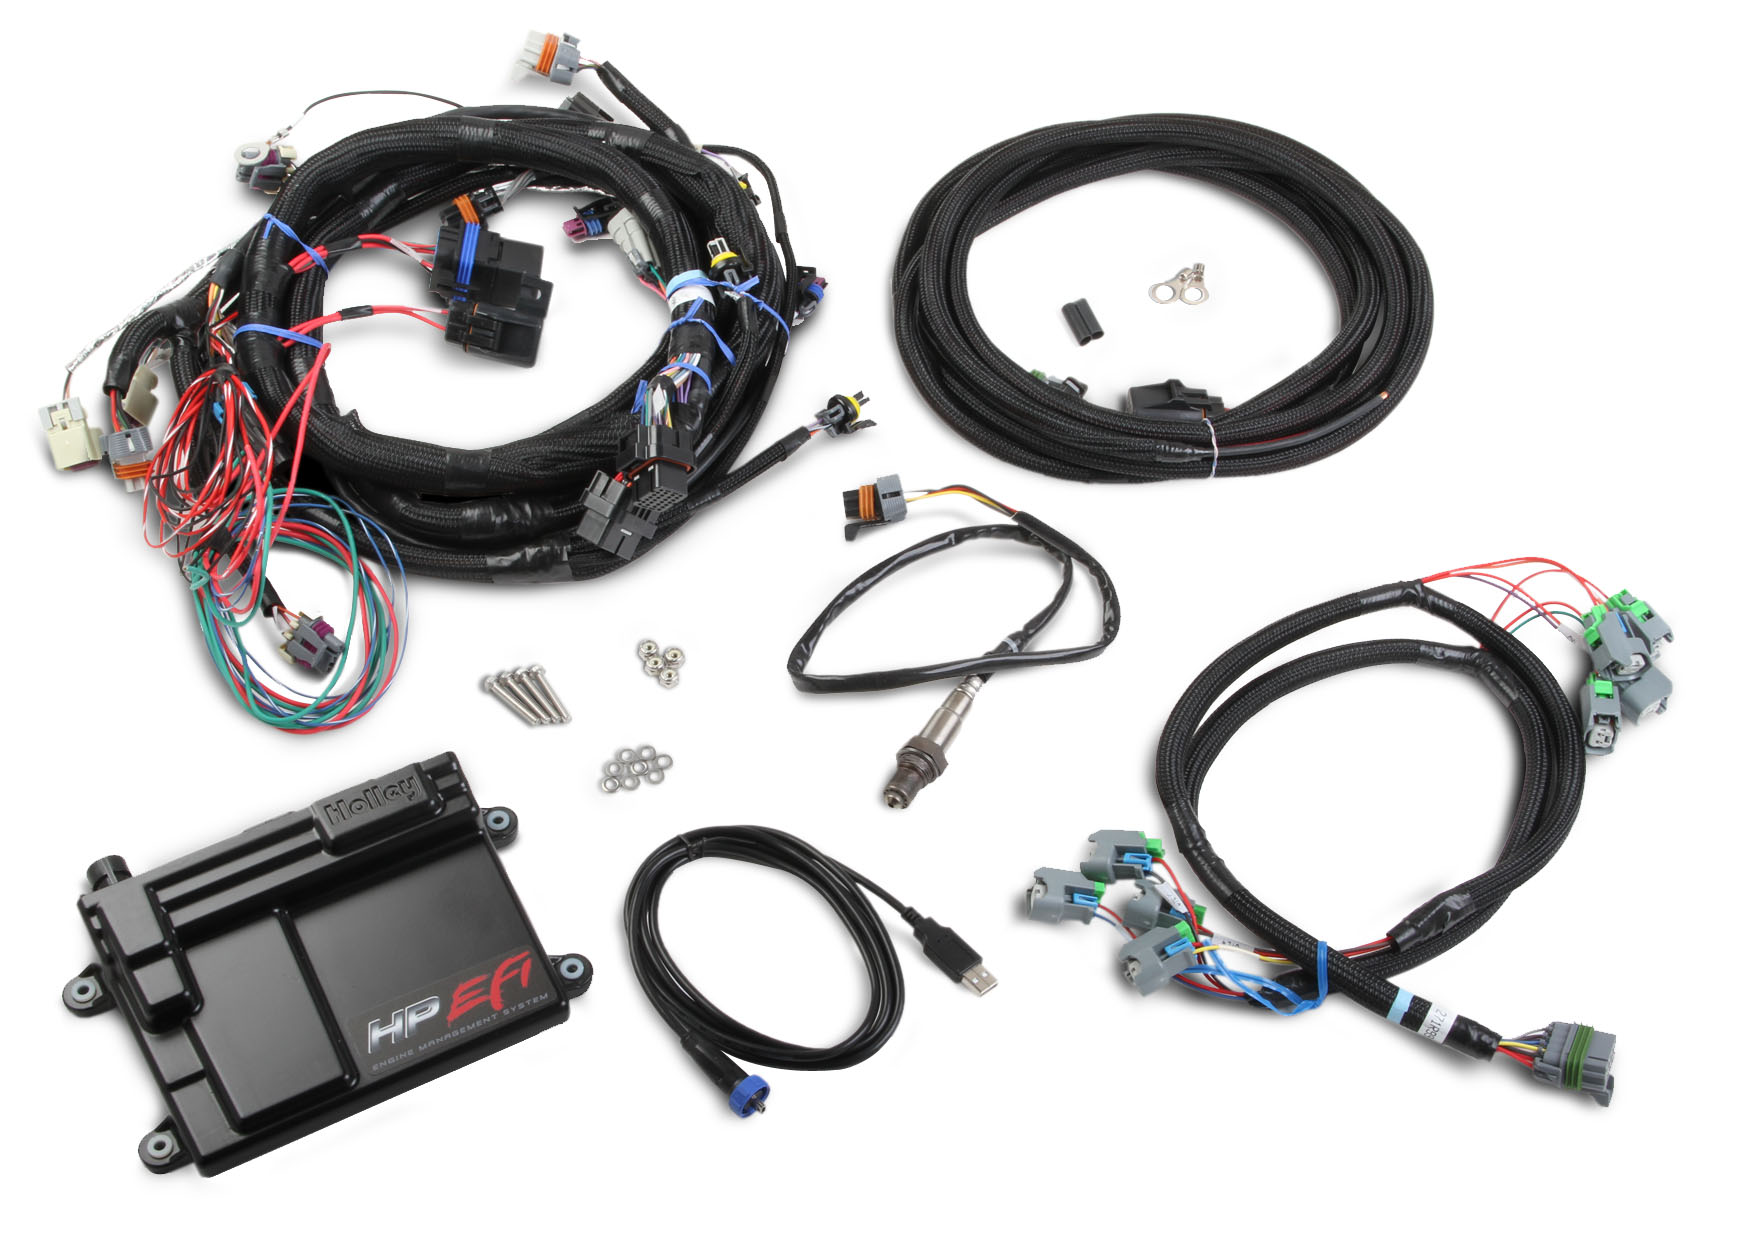 gm ls2 ls3 ls7 hp efi ecu harness kits rh kcmaxxperformance com Ford Wiring Harness efi wiring harness 1992-97 gm lt1